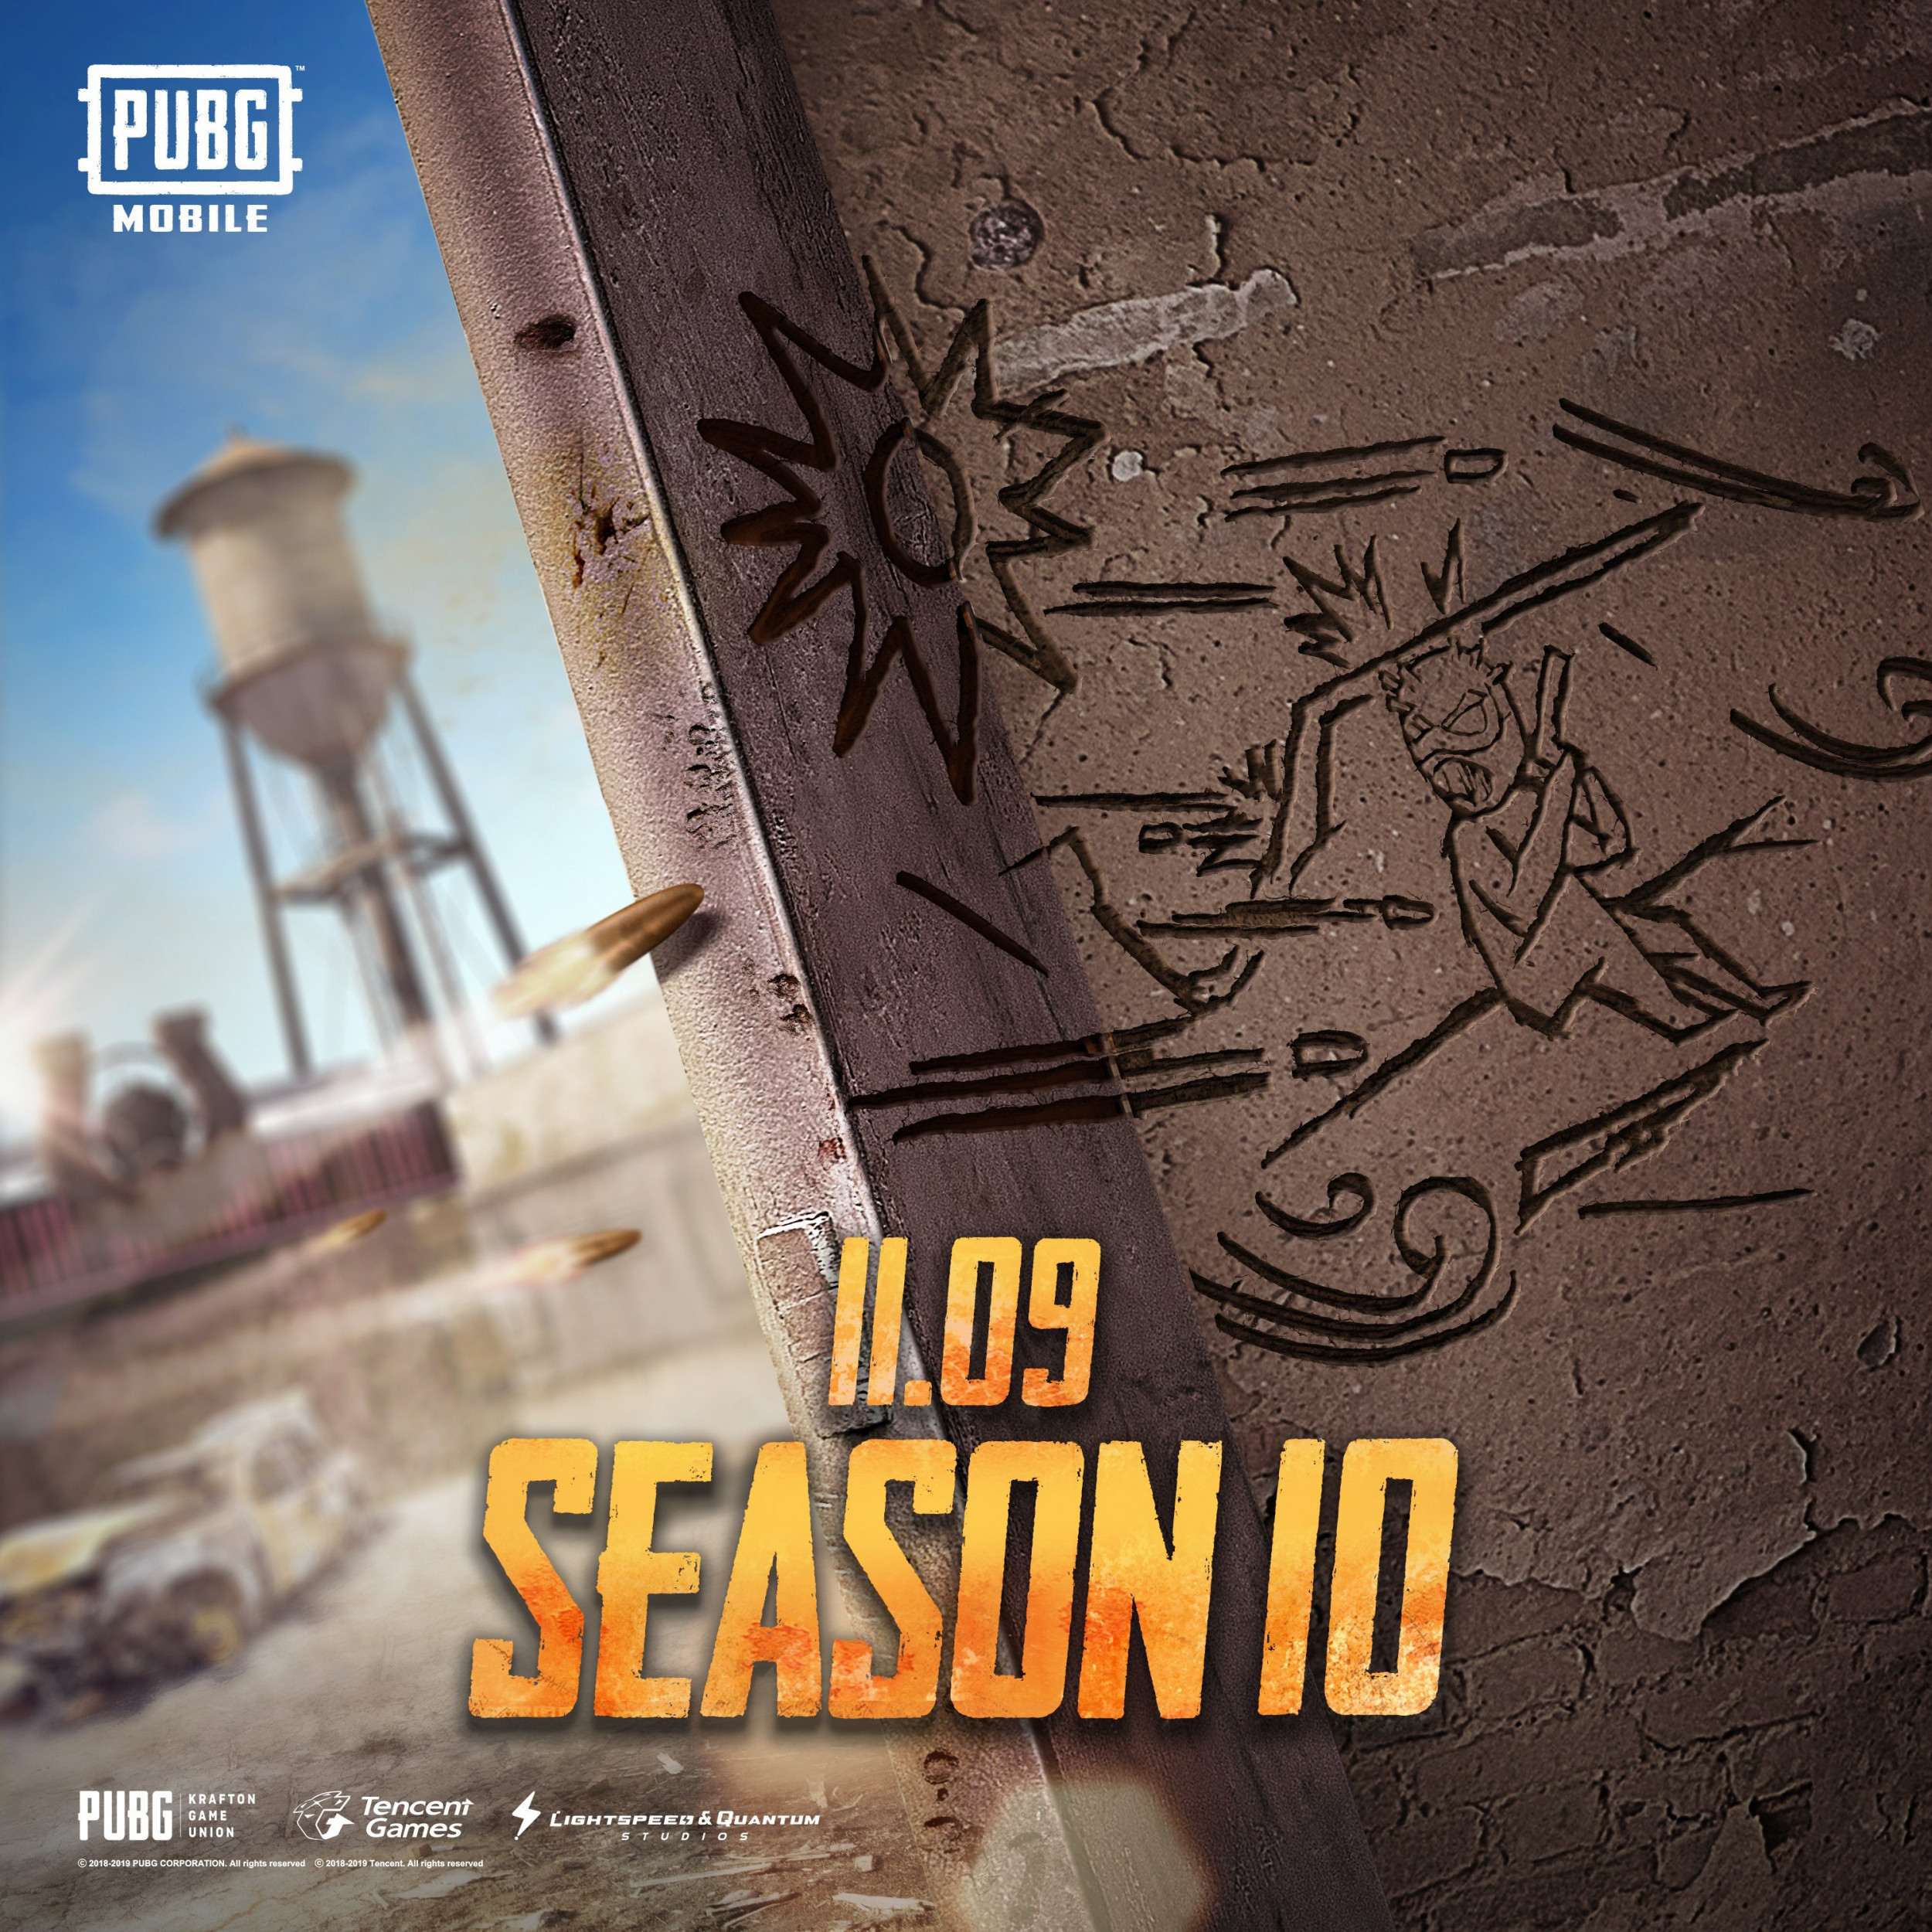 Pubg Mobile Update 0155 Adds Season 10 Royale Pass Mp5k